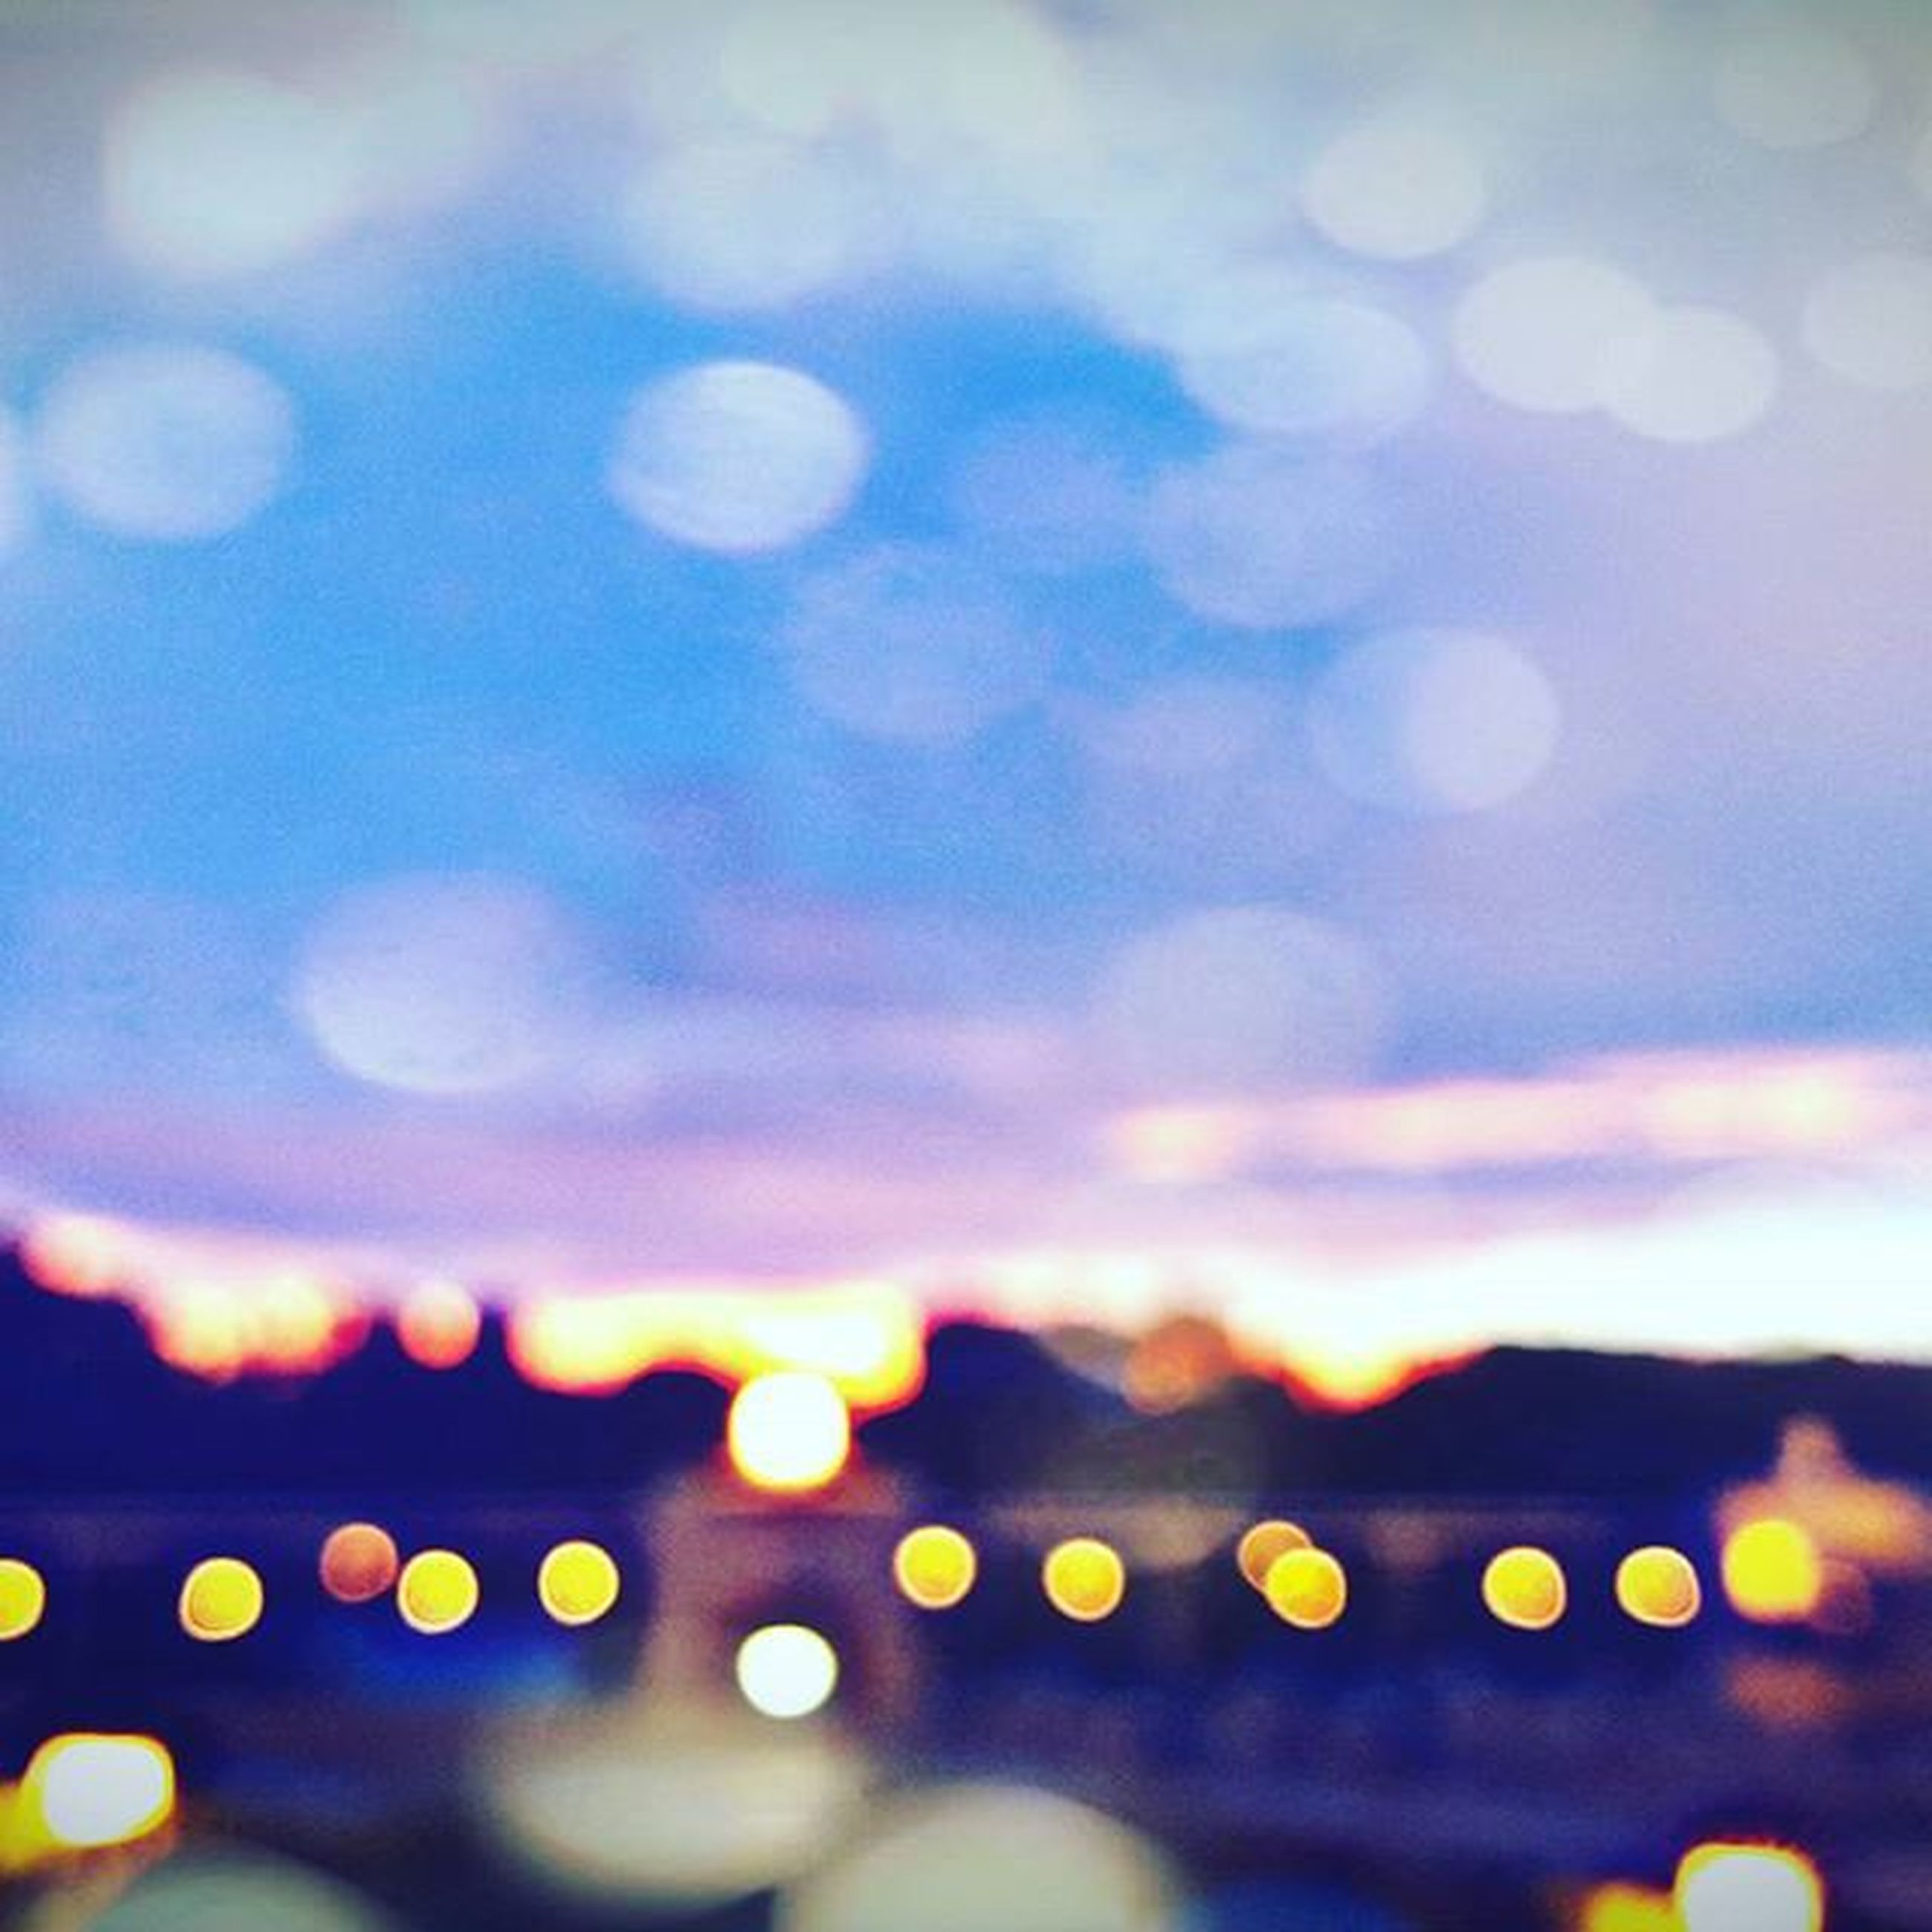 lens flare, defocused, sky, sunset, sun, illuminated, focus on foreground, cloud - sky, beauty in nature, nature, selective focus, no people, outdoors, sunlight, close-up, dusk, scenics, backgrounds, tranquility, light - natural phenomenon